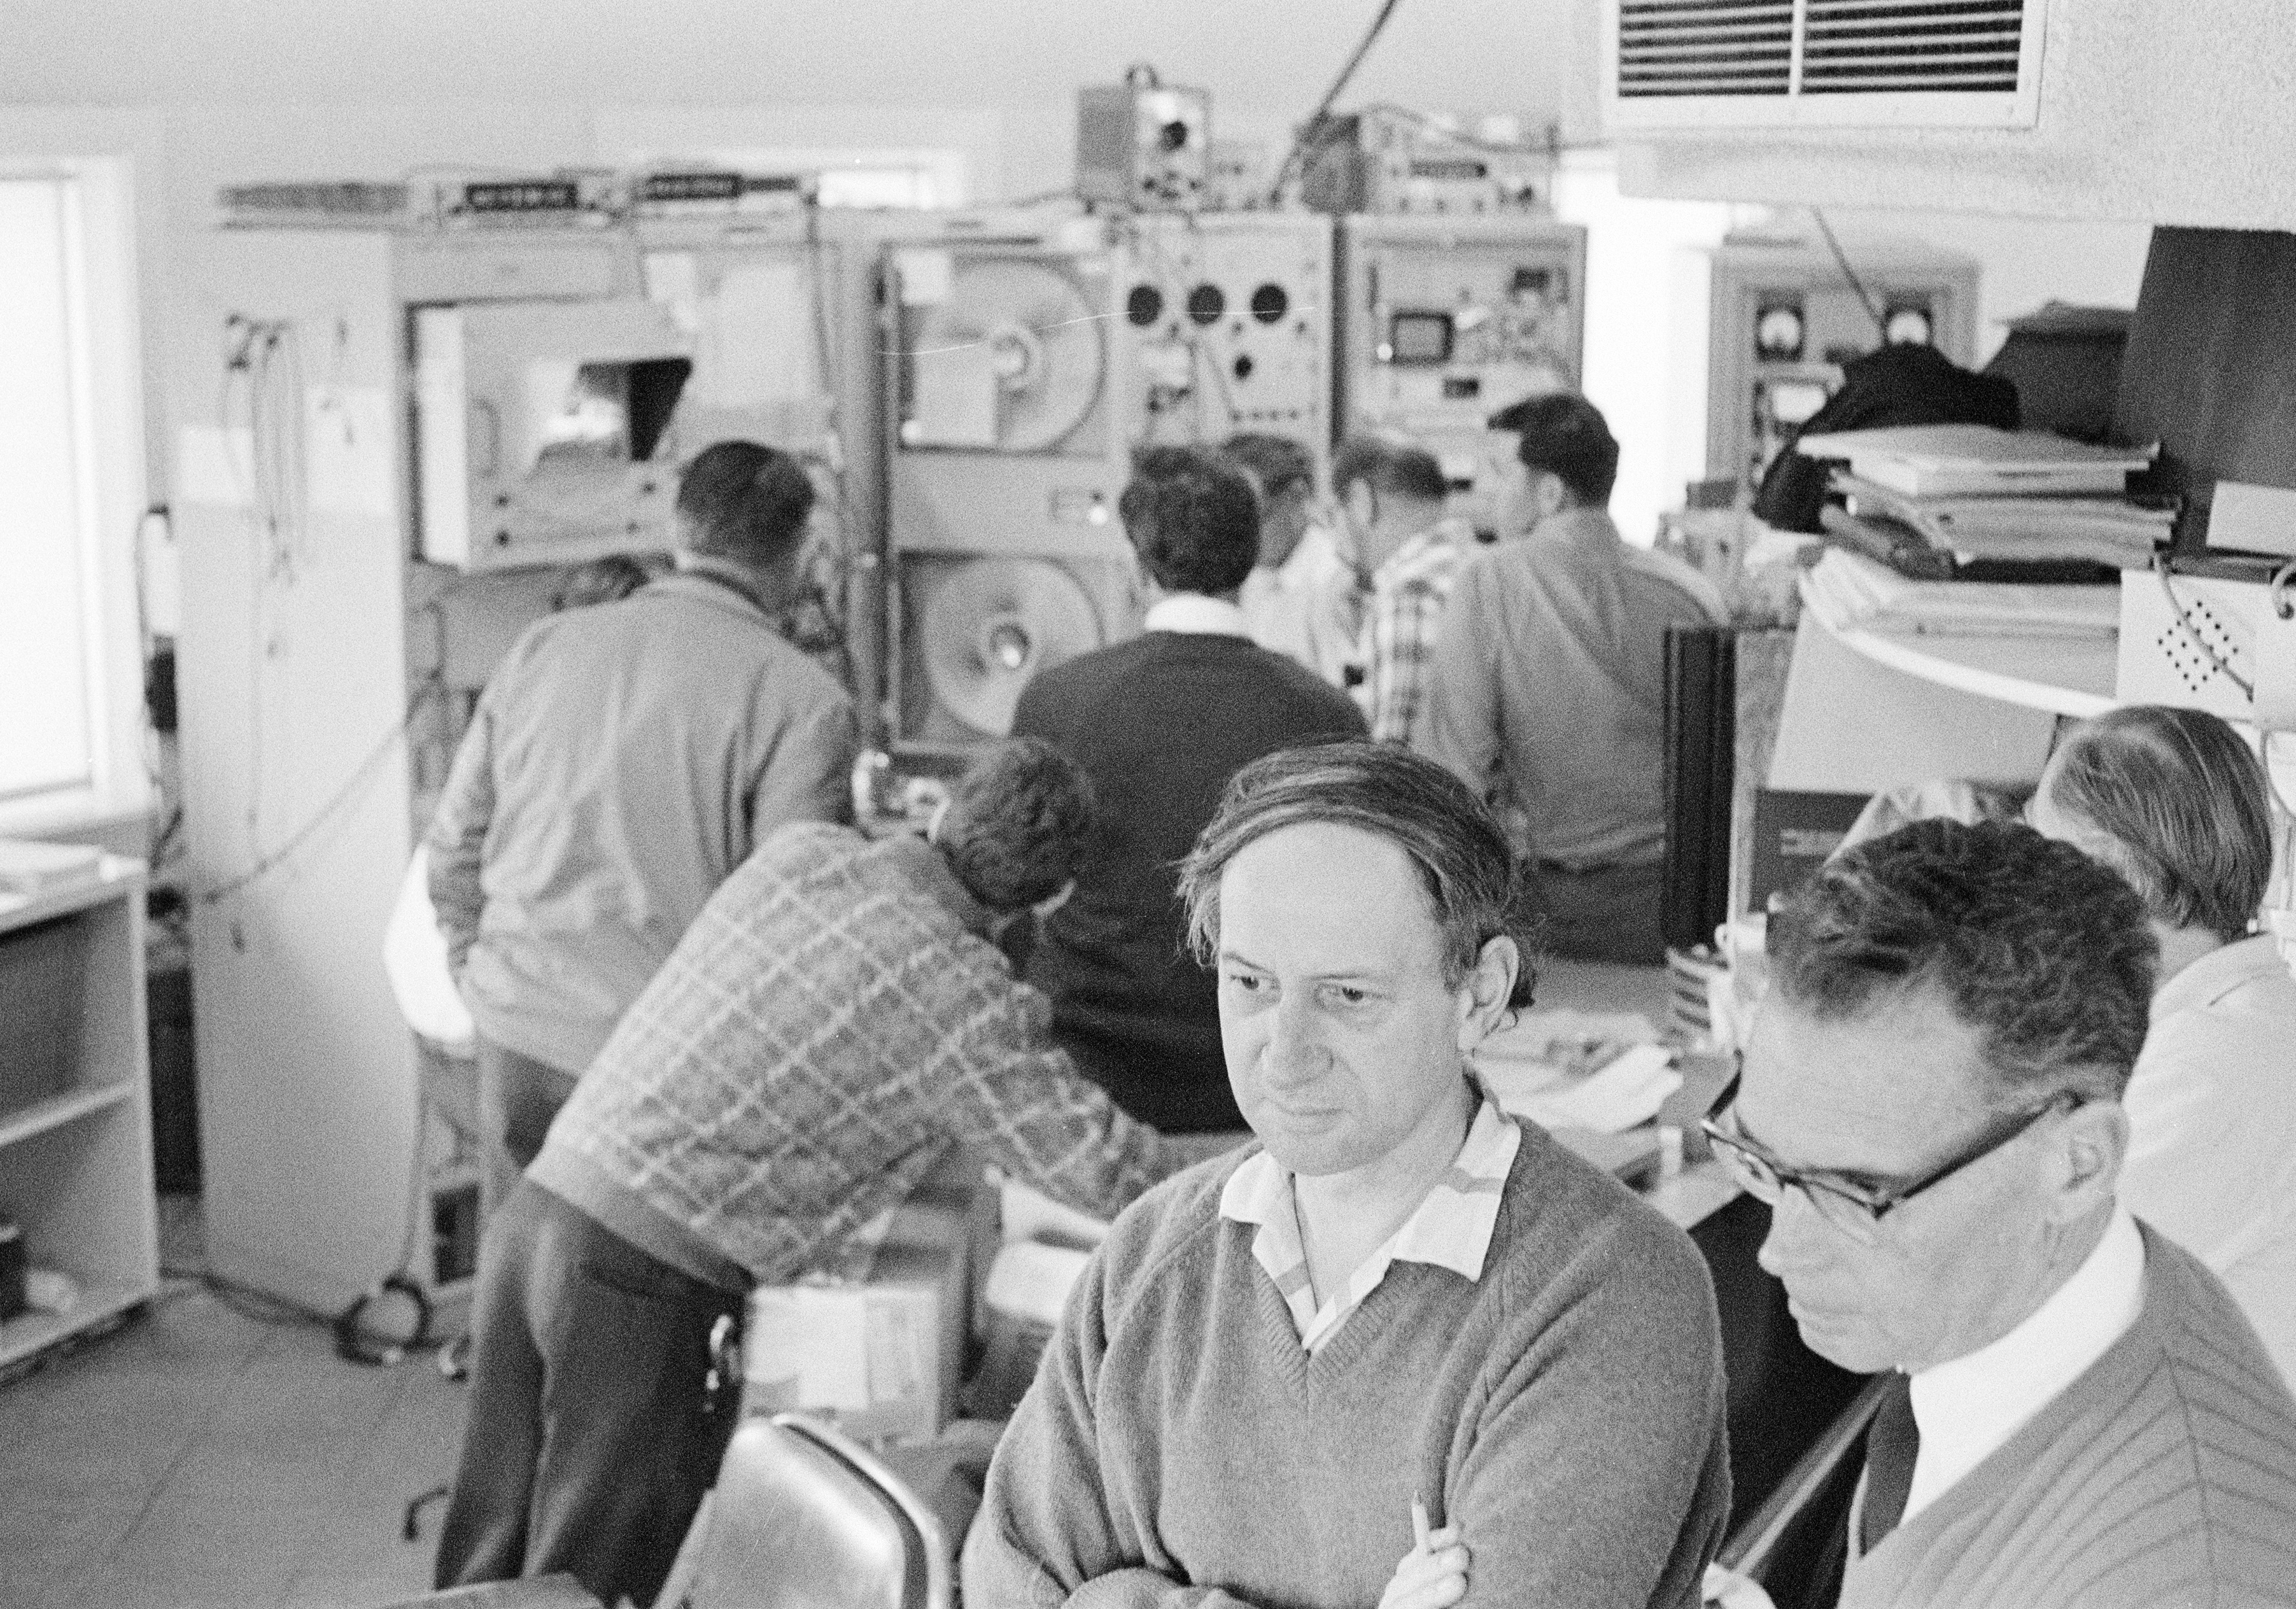 People working in the Parkes telescope control room during the Apollo11 mission.